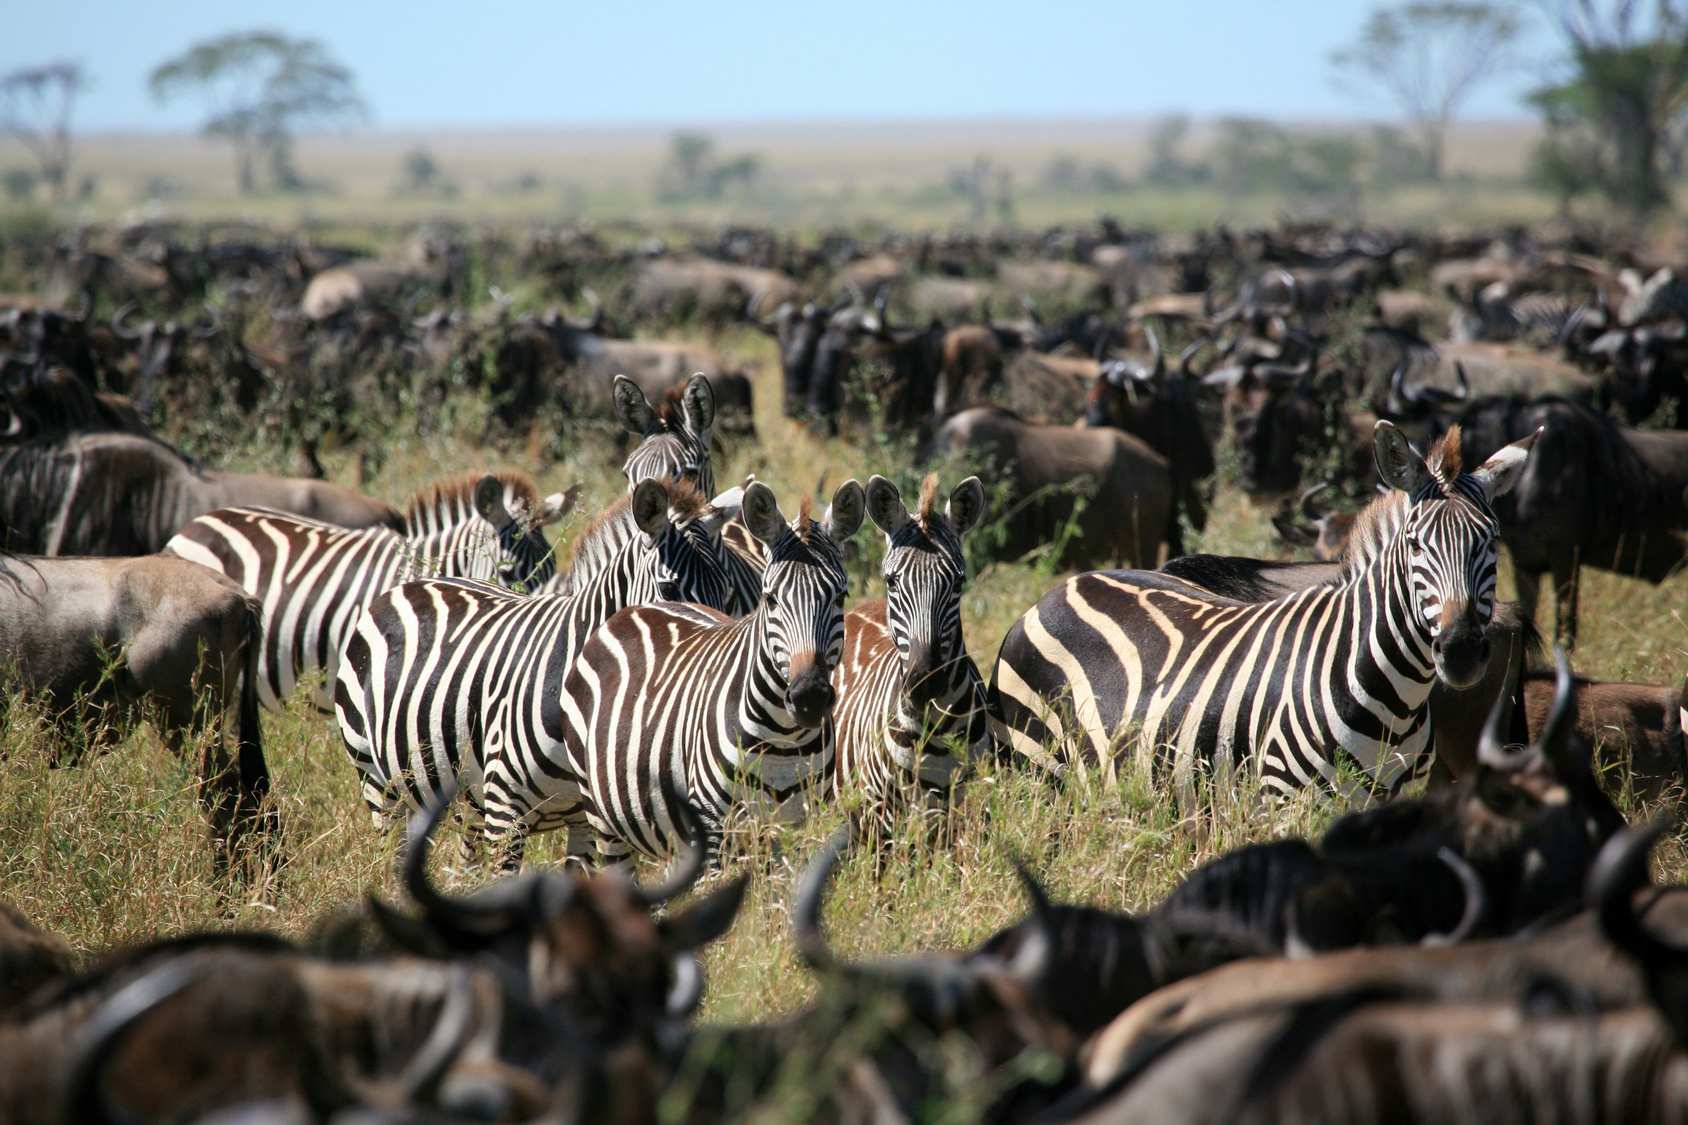 Zebras among a large herd of wildebeest during an annual migration